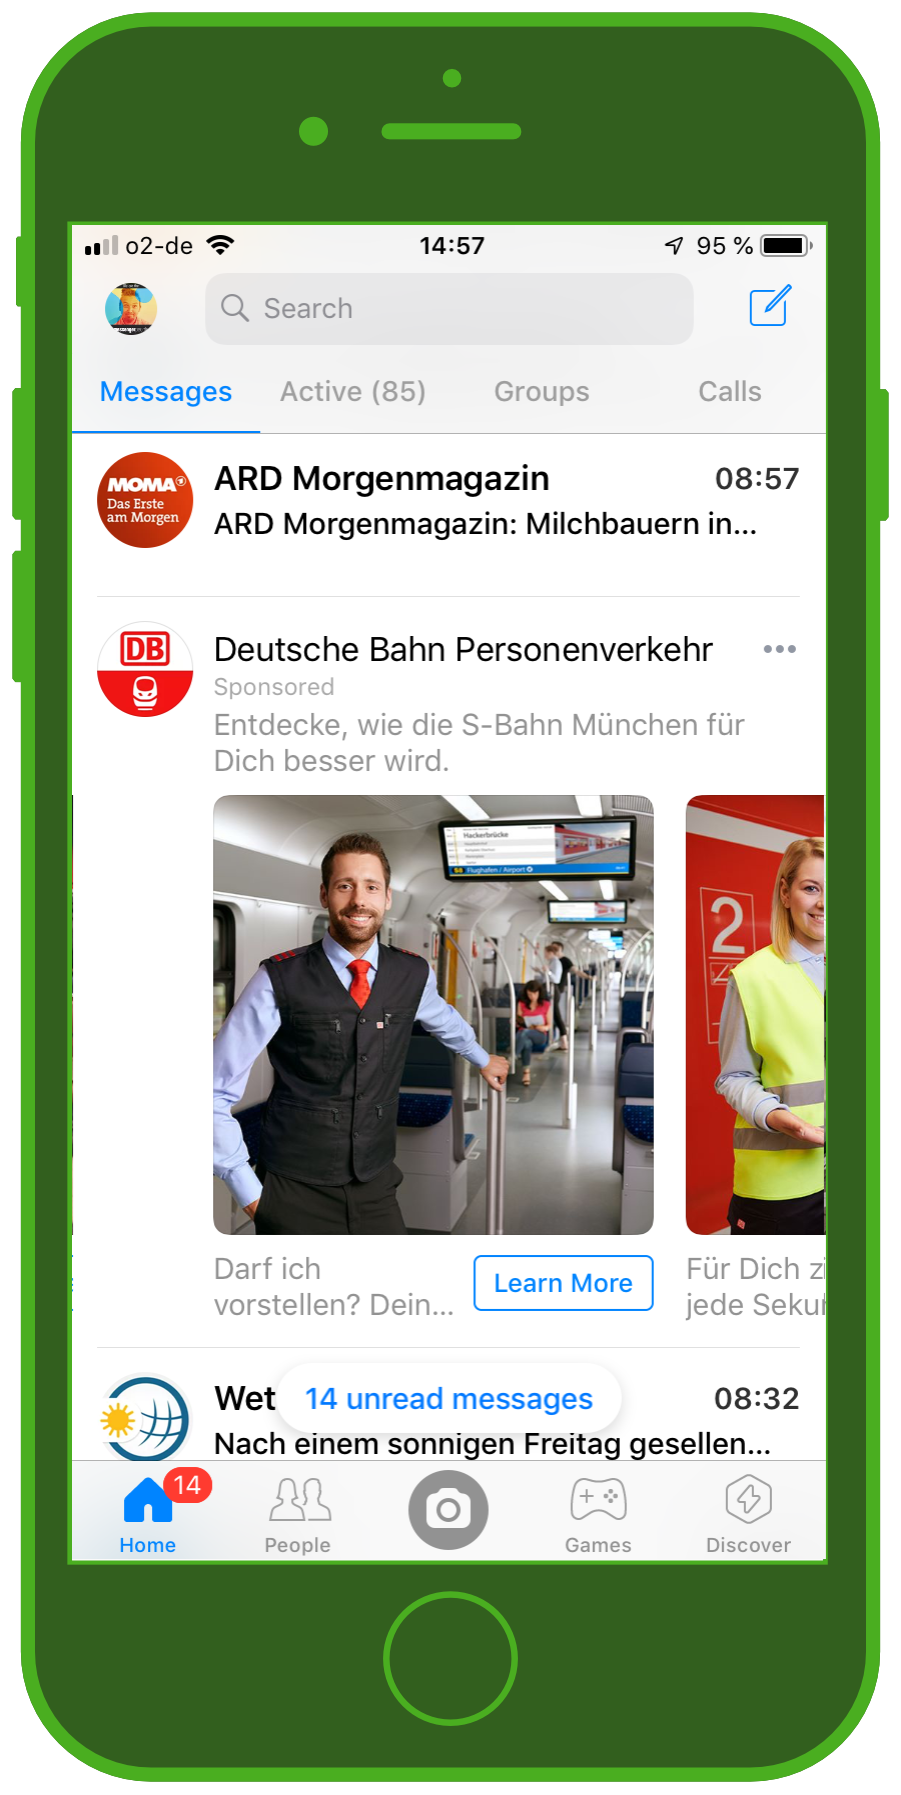 Messaging Apps & Brands Facebook Messenger Deutsche Bahn S-Bahn München Carousel Ad 1